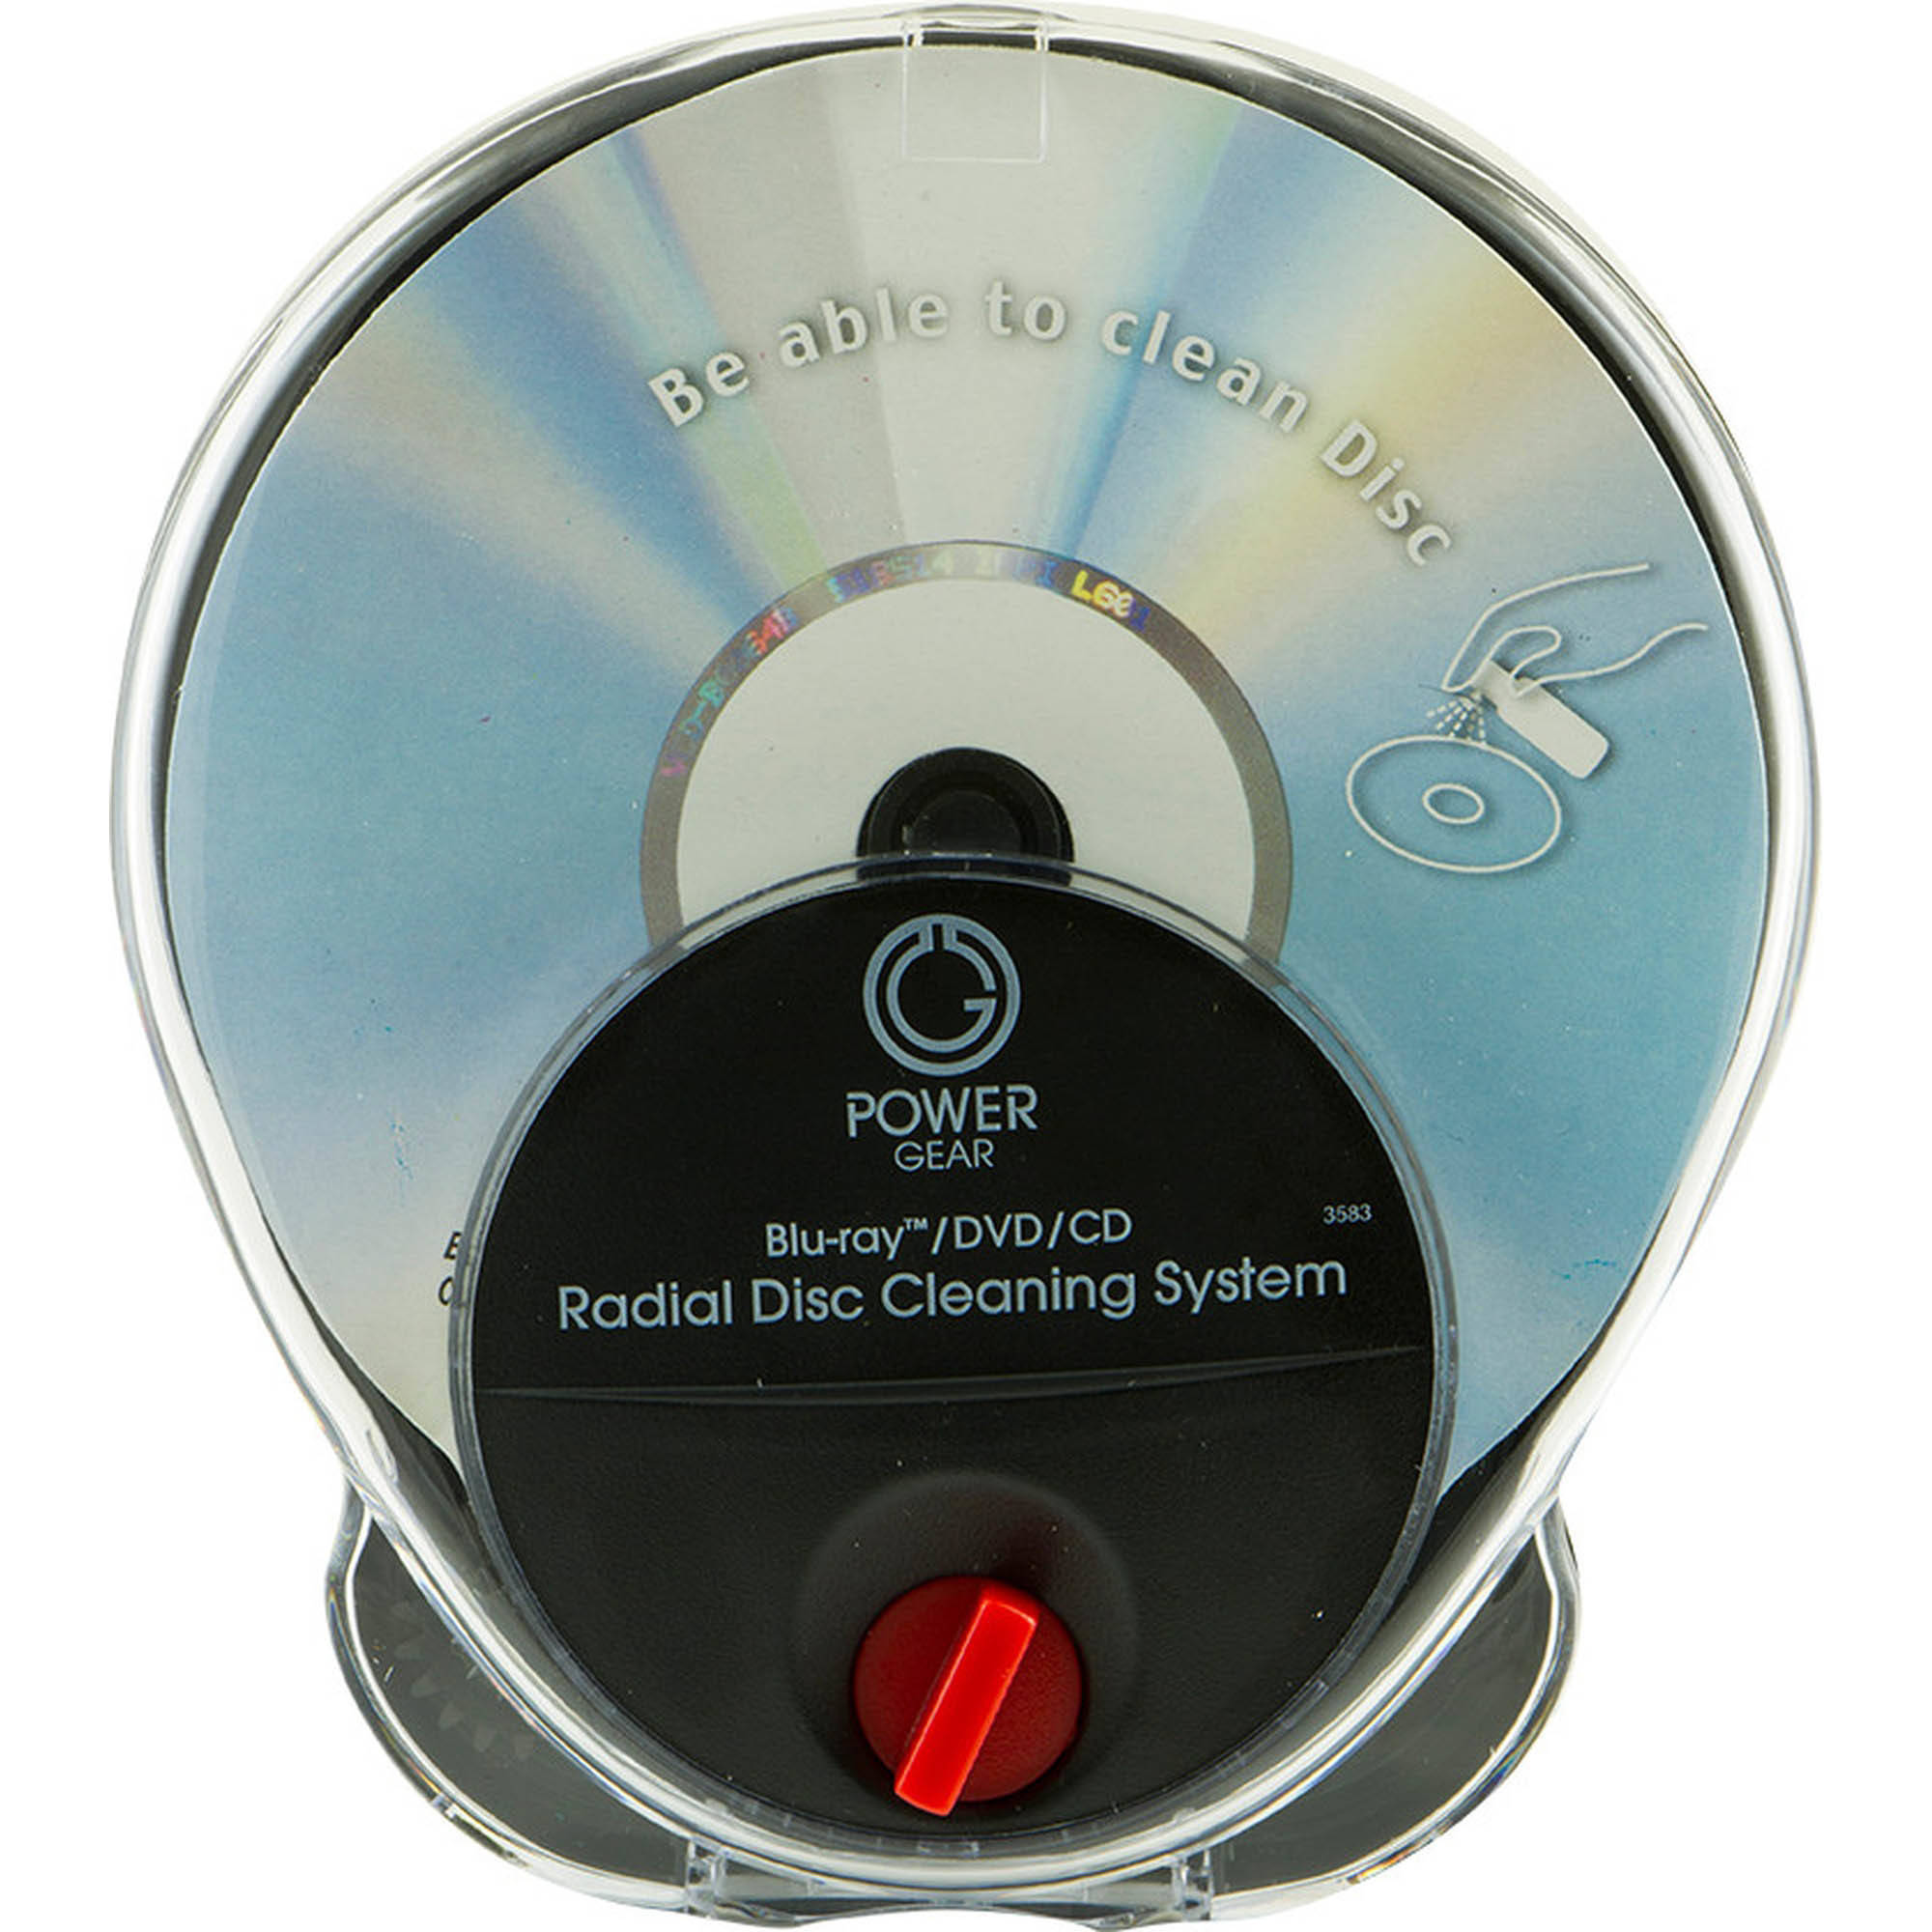 Power Gear Blu-ray/DVD/CD Radical Disc Cleaning System